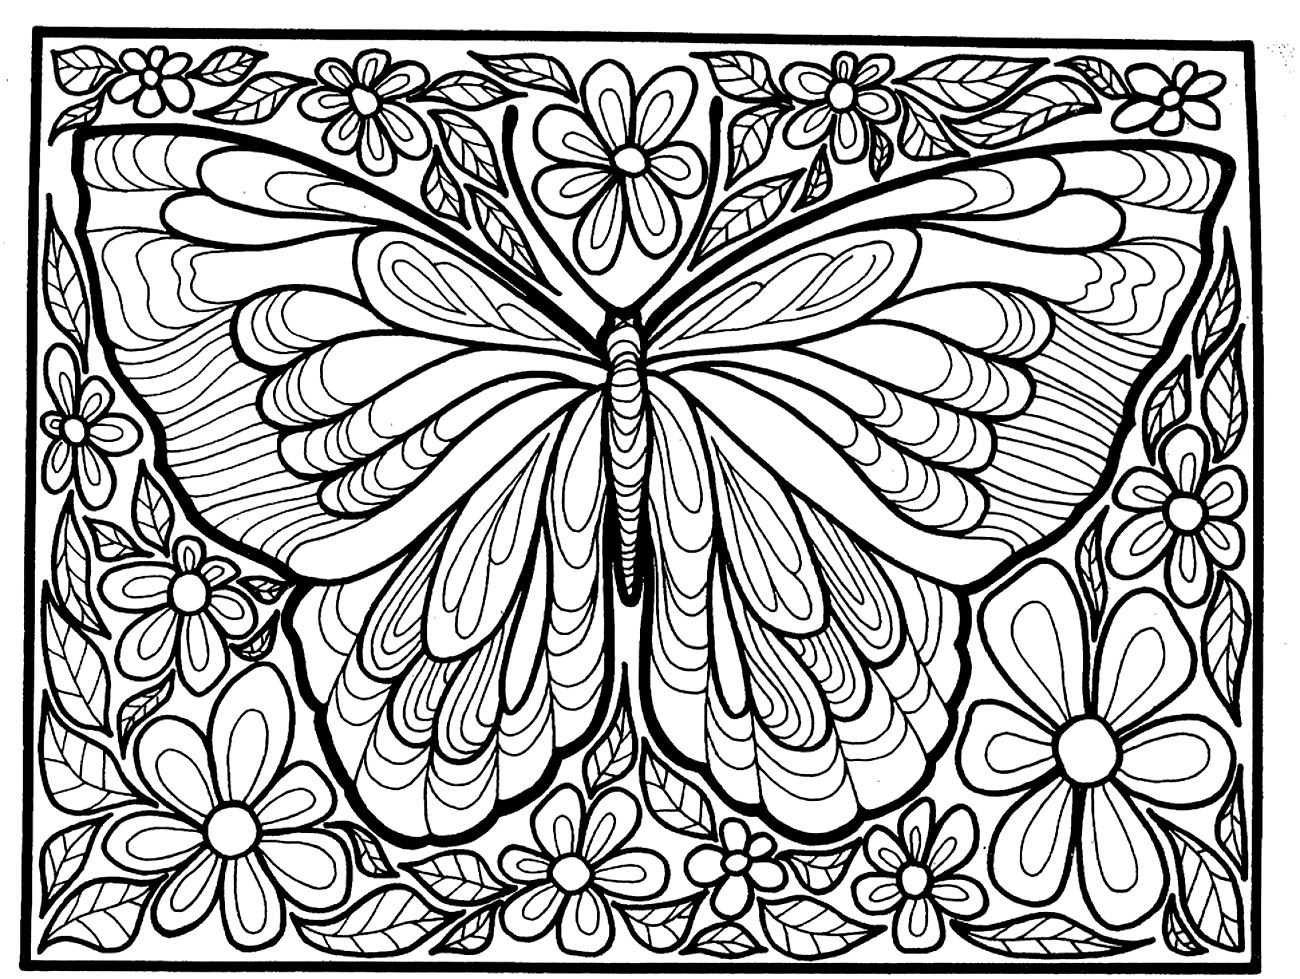 New butterfly Mandala Coloring Pages Printable Gallery Gallery Of Modern Intricate Mandala Coloring Pages Coloring for Good Mandala to Print